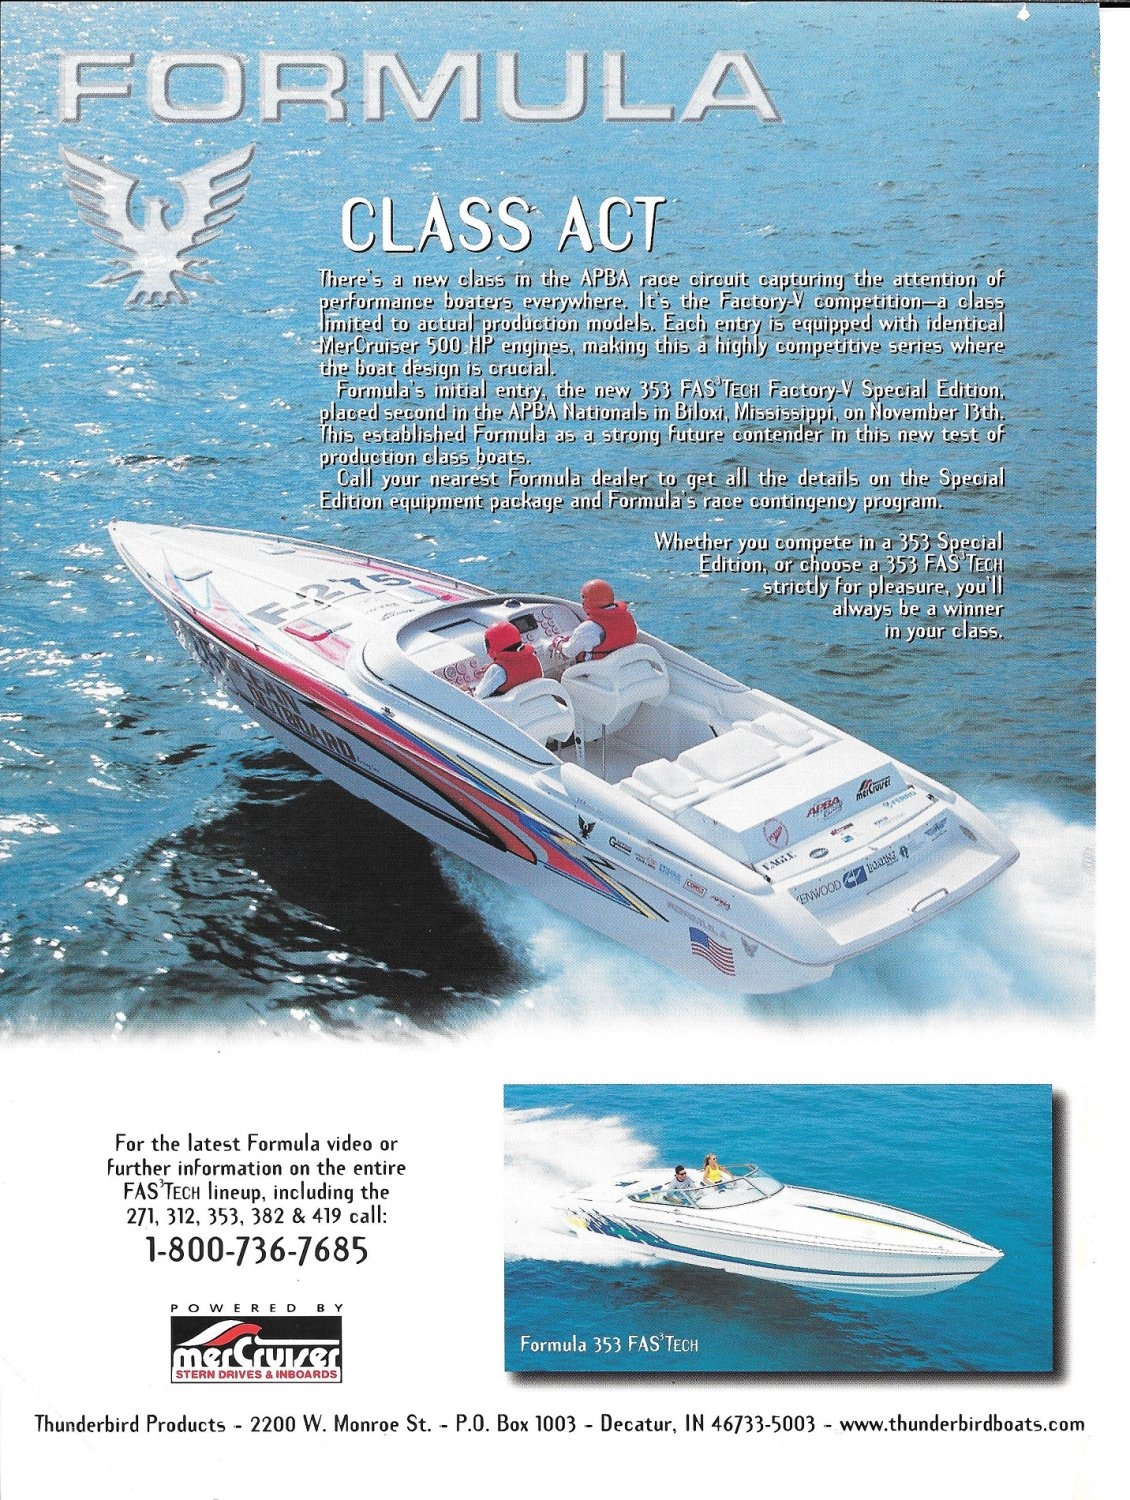 1999 Thunderbird Boats Color Ad- Nice Photo Formula 353 Fas Tech